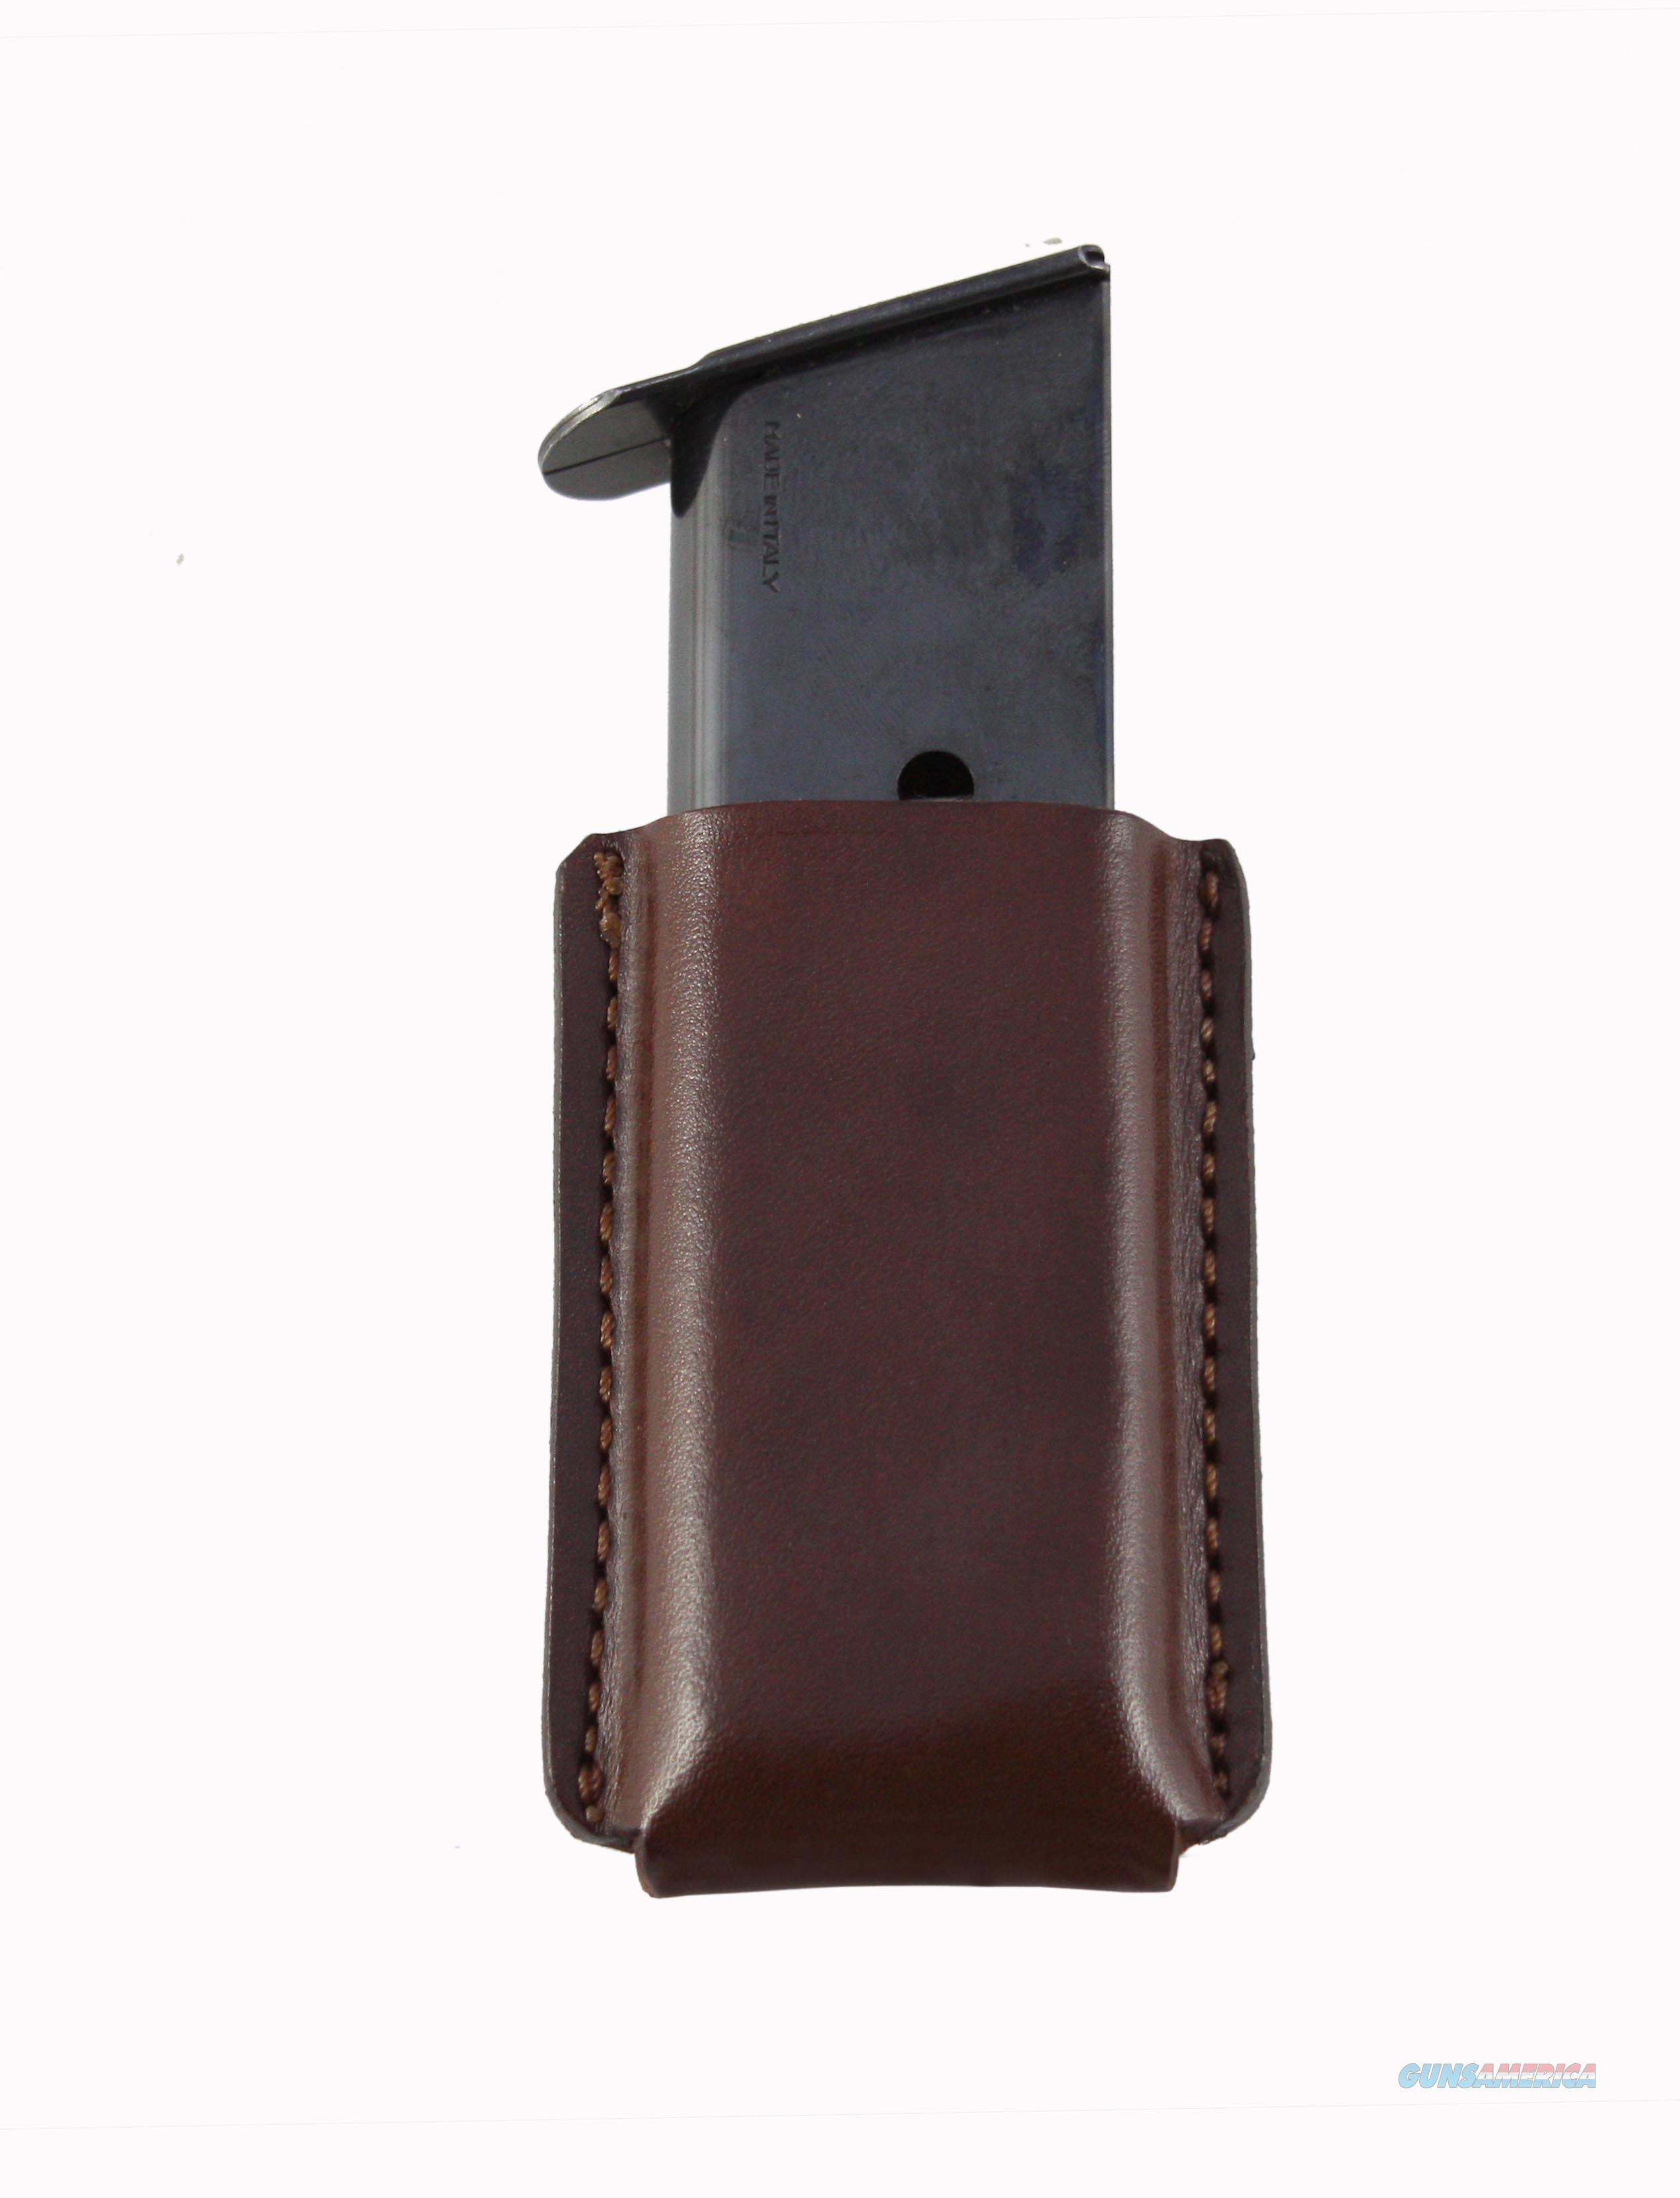 Leather Single Magazine Pouch  CZ 75D Compact  Non-Guns > Holsters and Gunleather > Magazine Holders